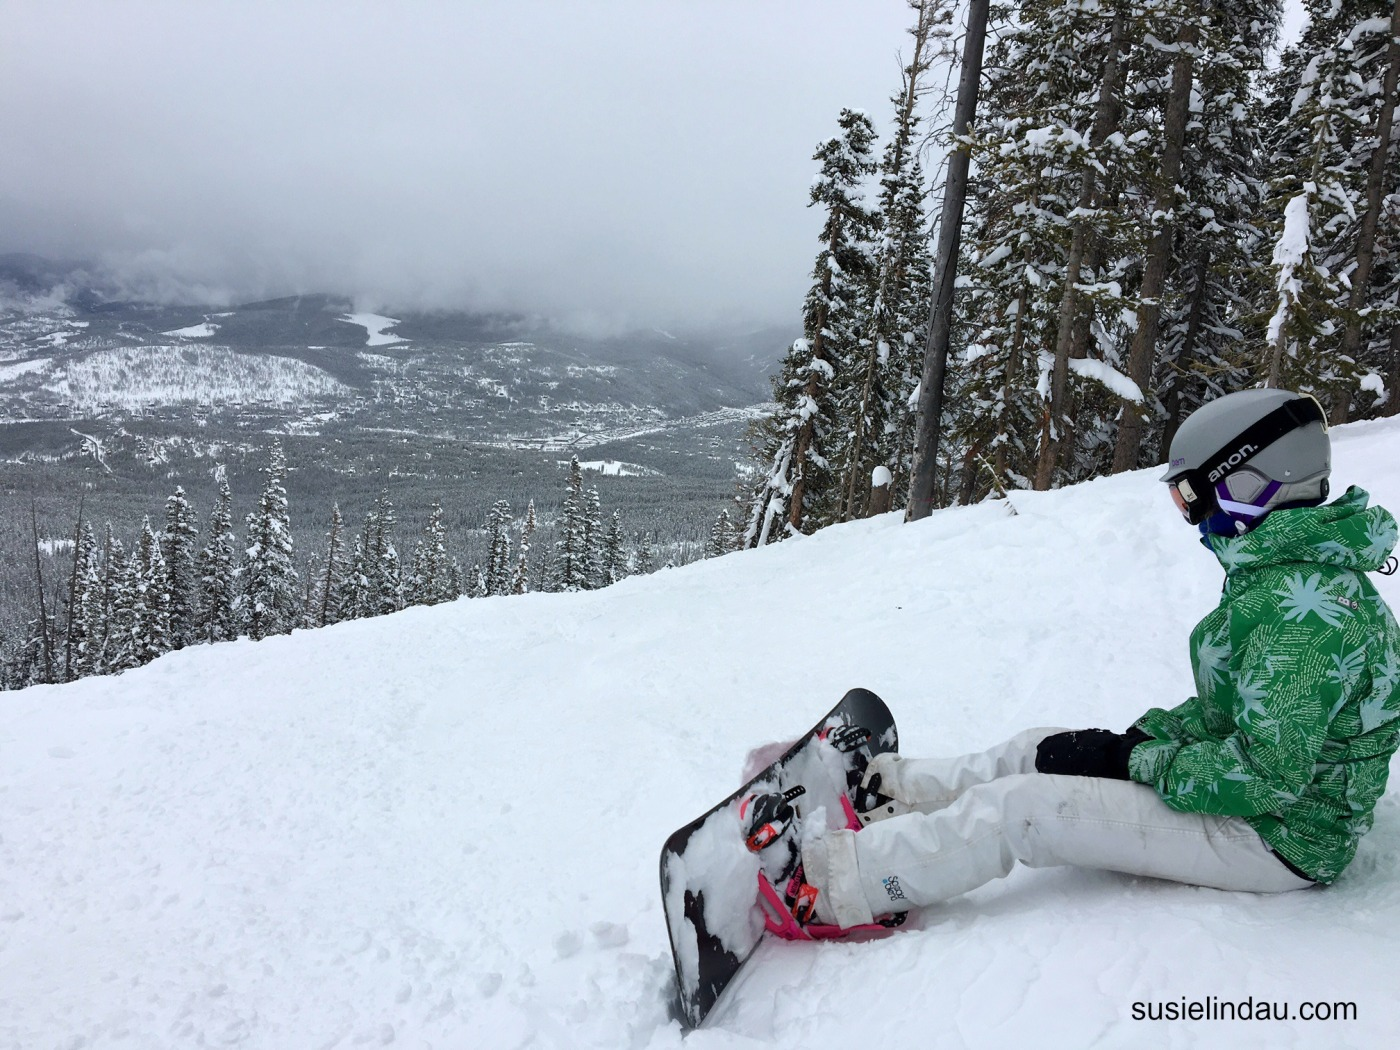 snowboarder Courtney Lindau at Peak 7